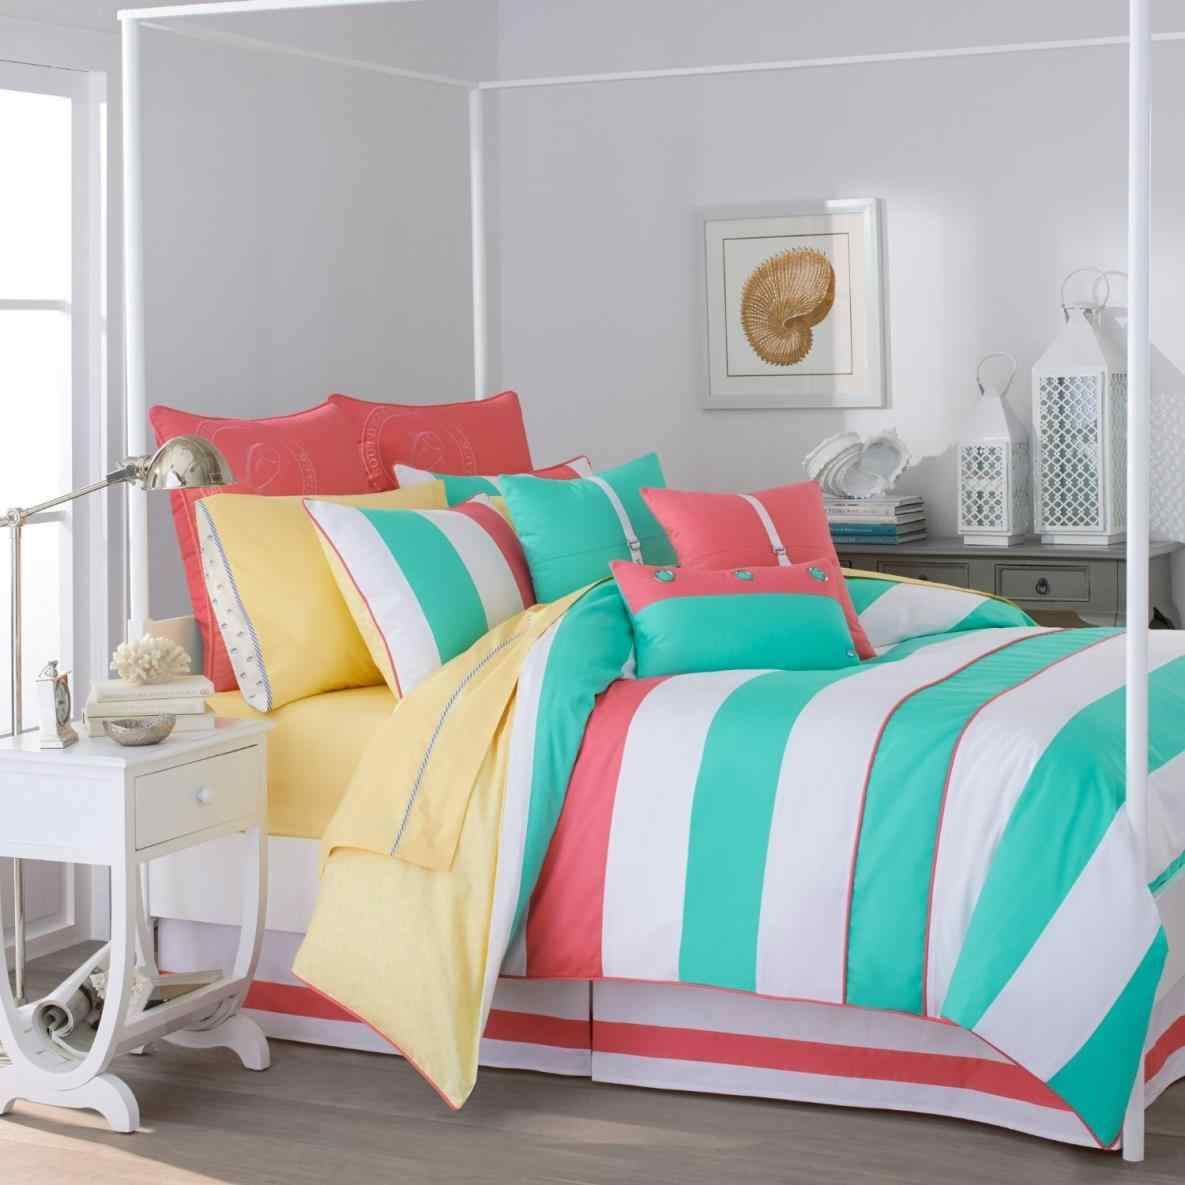 quil for discount ga comforter frontgate set comforters tropical blue twin endearing bed beds bedding xl s lovely luxury with sparkle duvet sets garage quilts along g college home turquoise hairy grey tahari ruffle cover